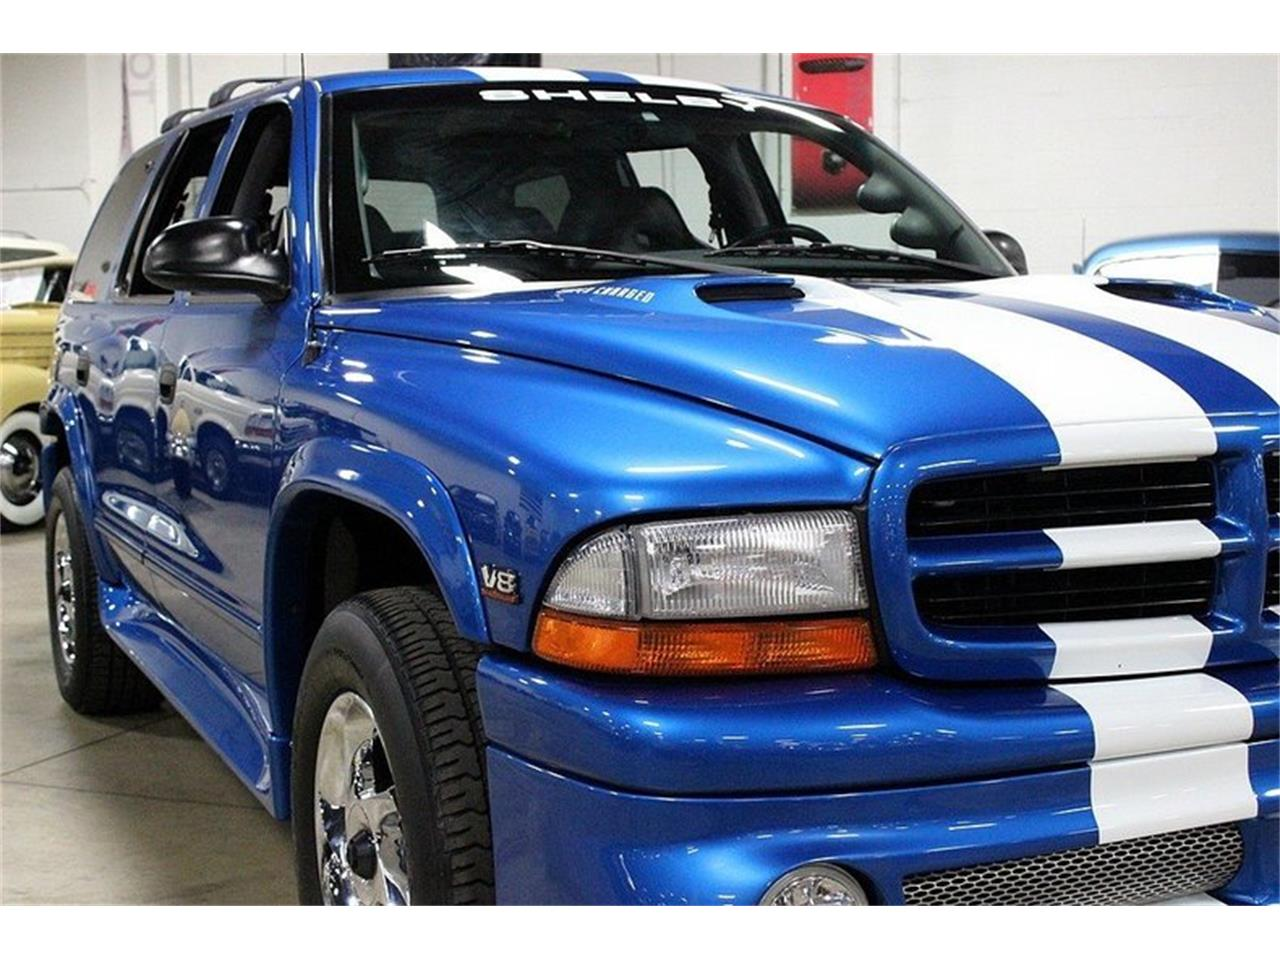 Large Picture of 1999 Durango Shelby SP-360 - $31,900.00 Offered by GR Auto Gallery - MB1Y